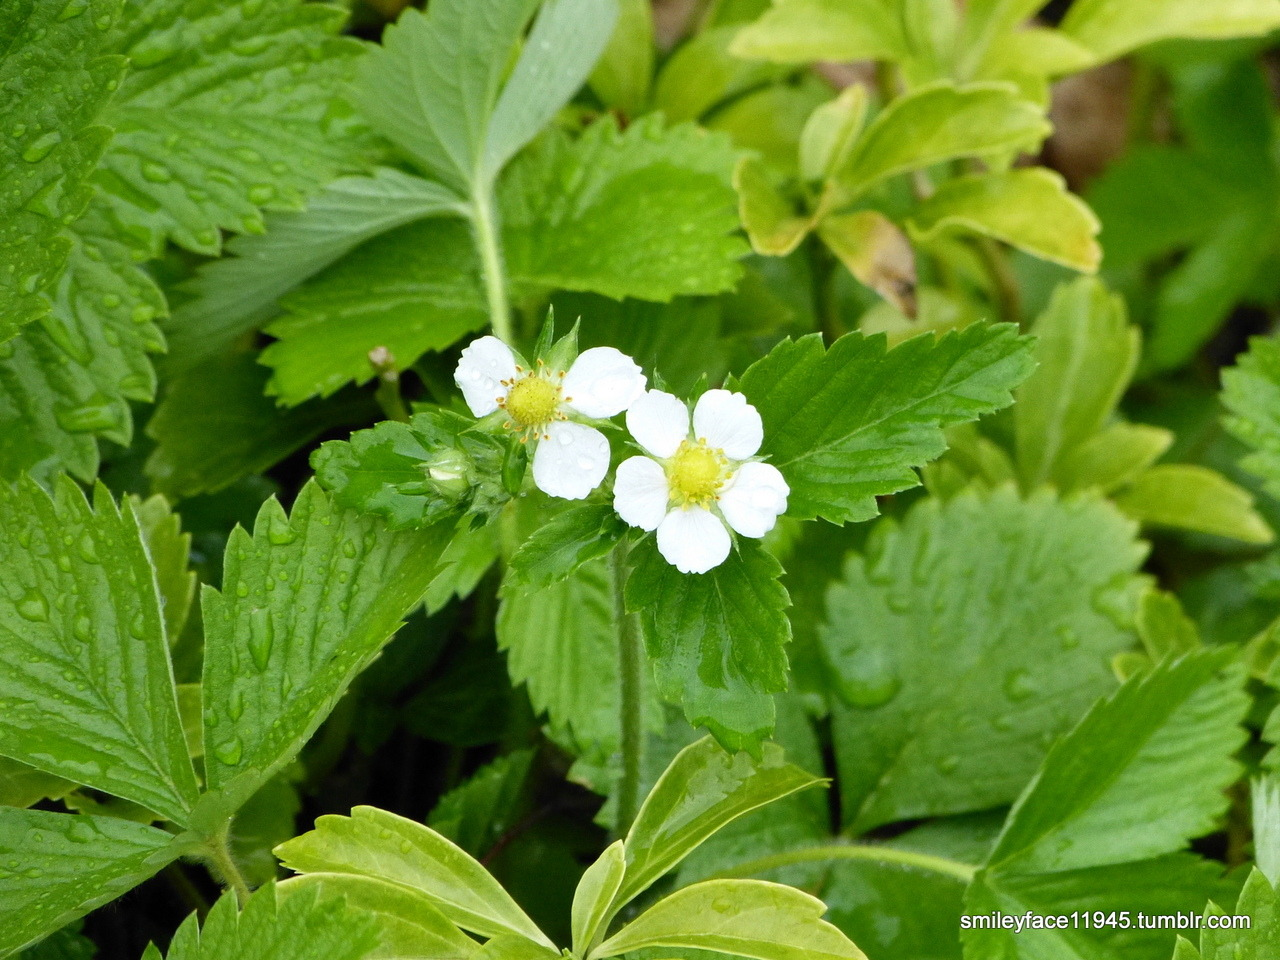 Fragaria × ananassa, the common strawberry. Clarion, Pennsylvania. 2012-05-04